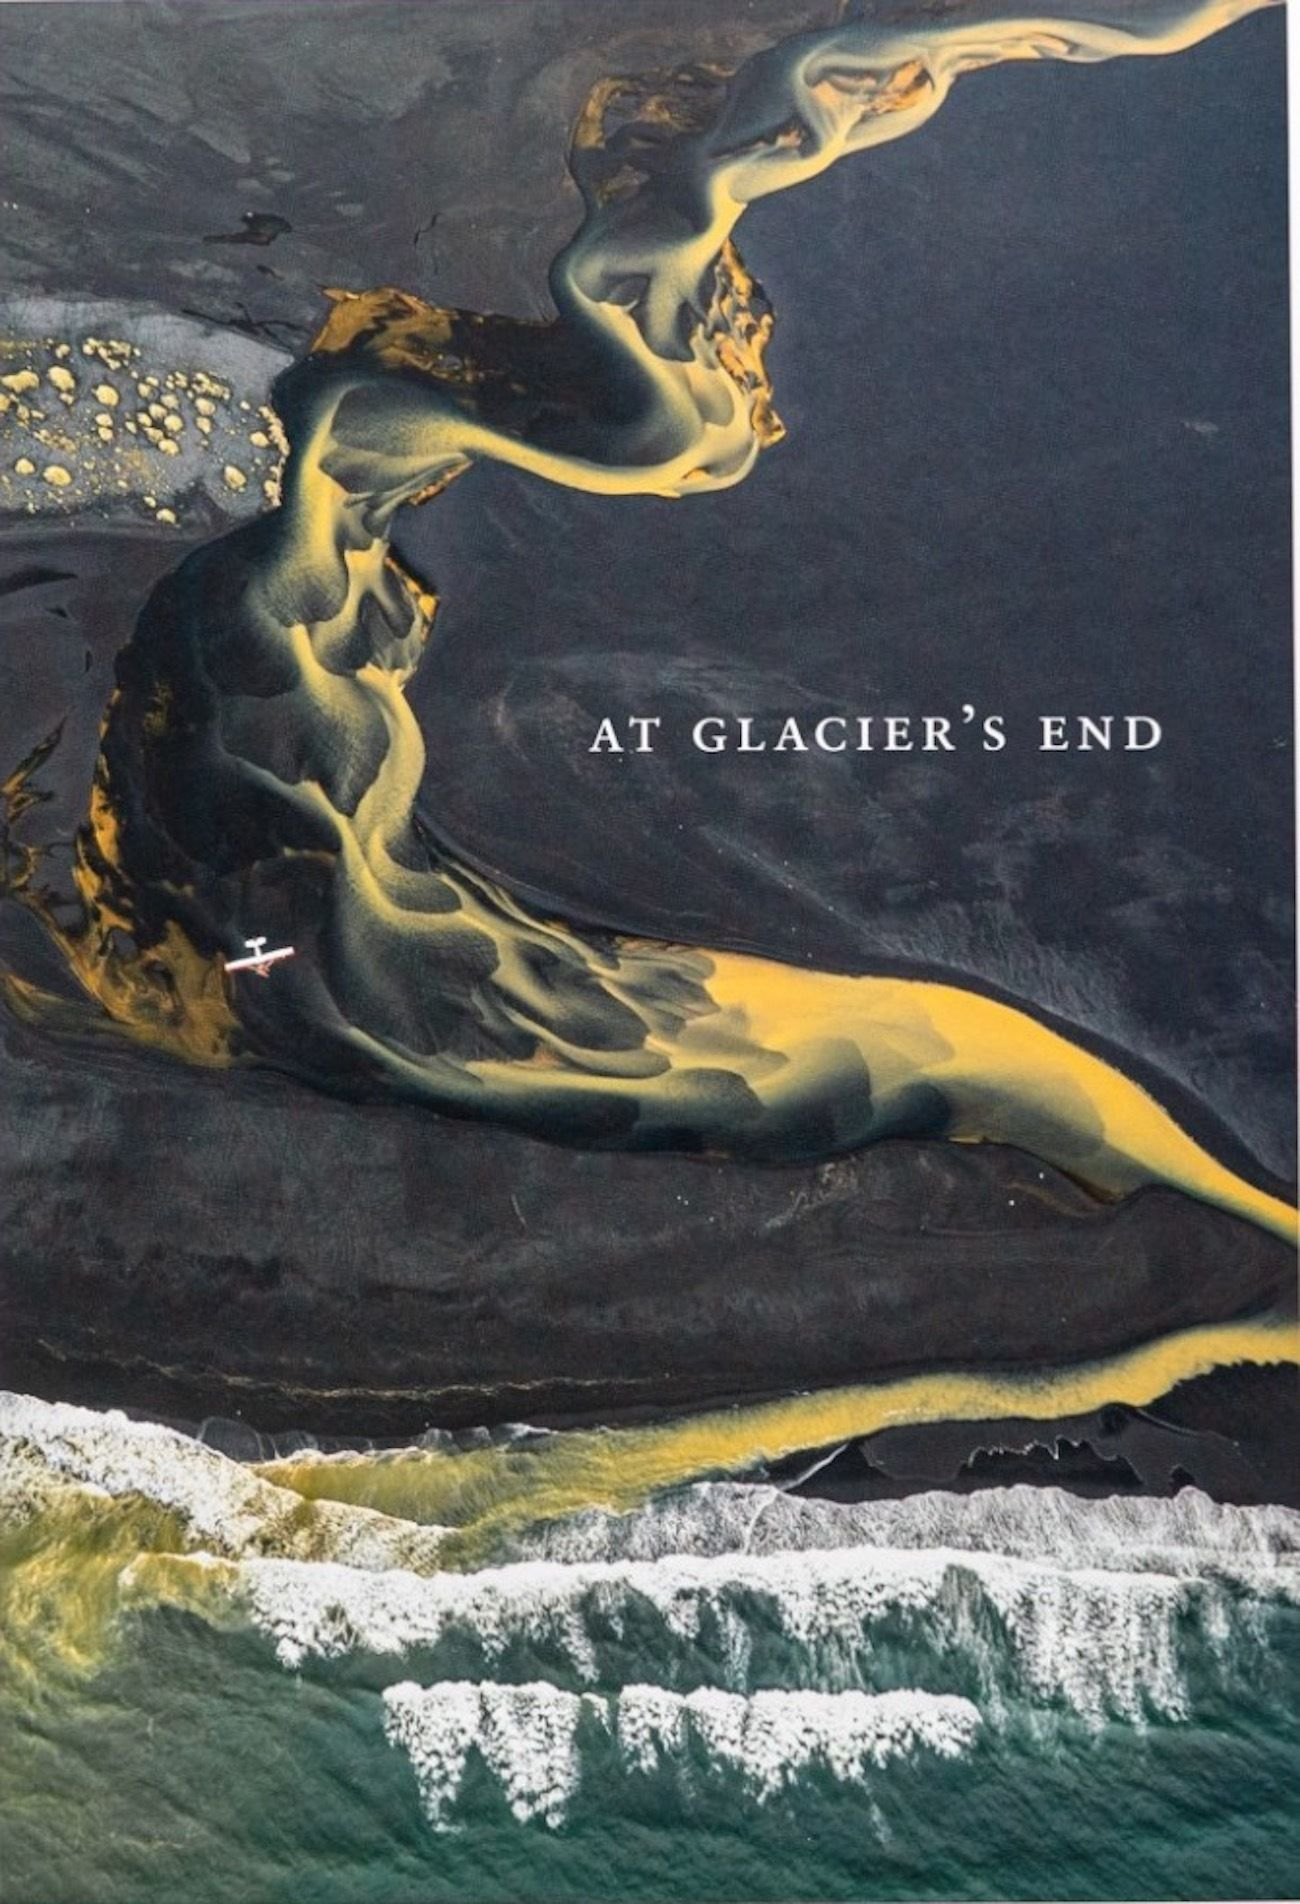 Chris Burkard At Glacier's end book cover